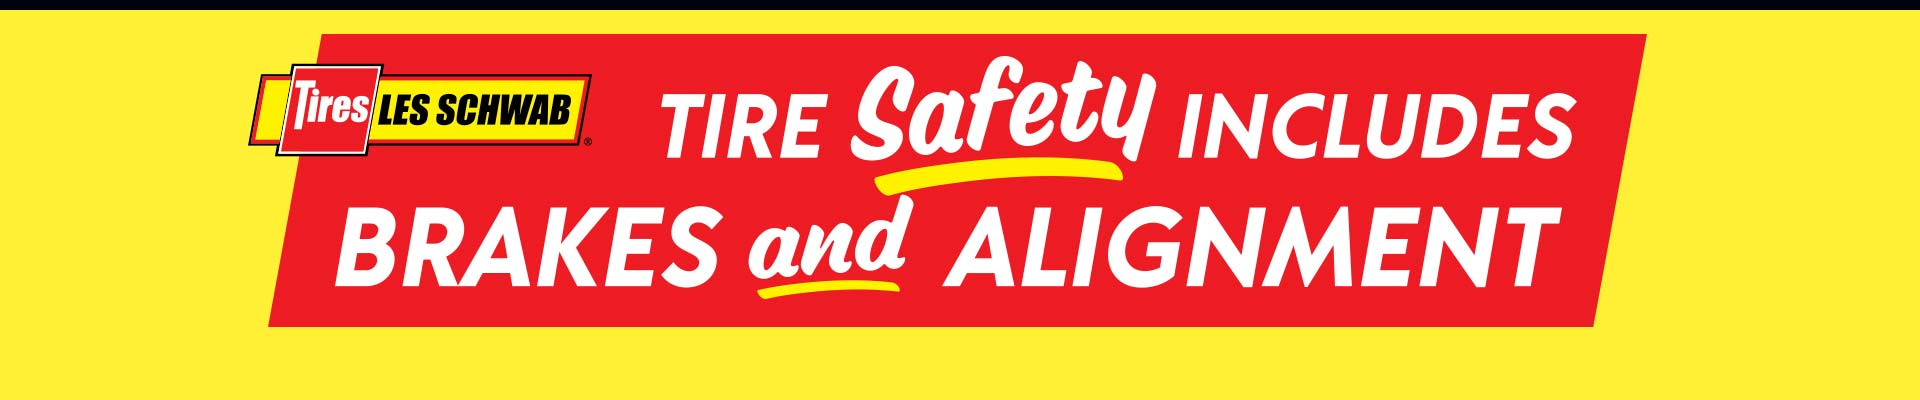 Red and yellow background with Safety message